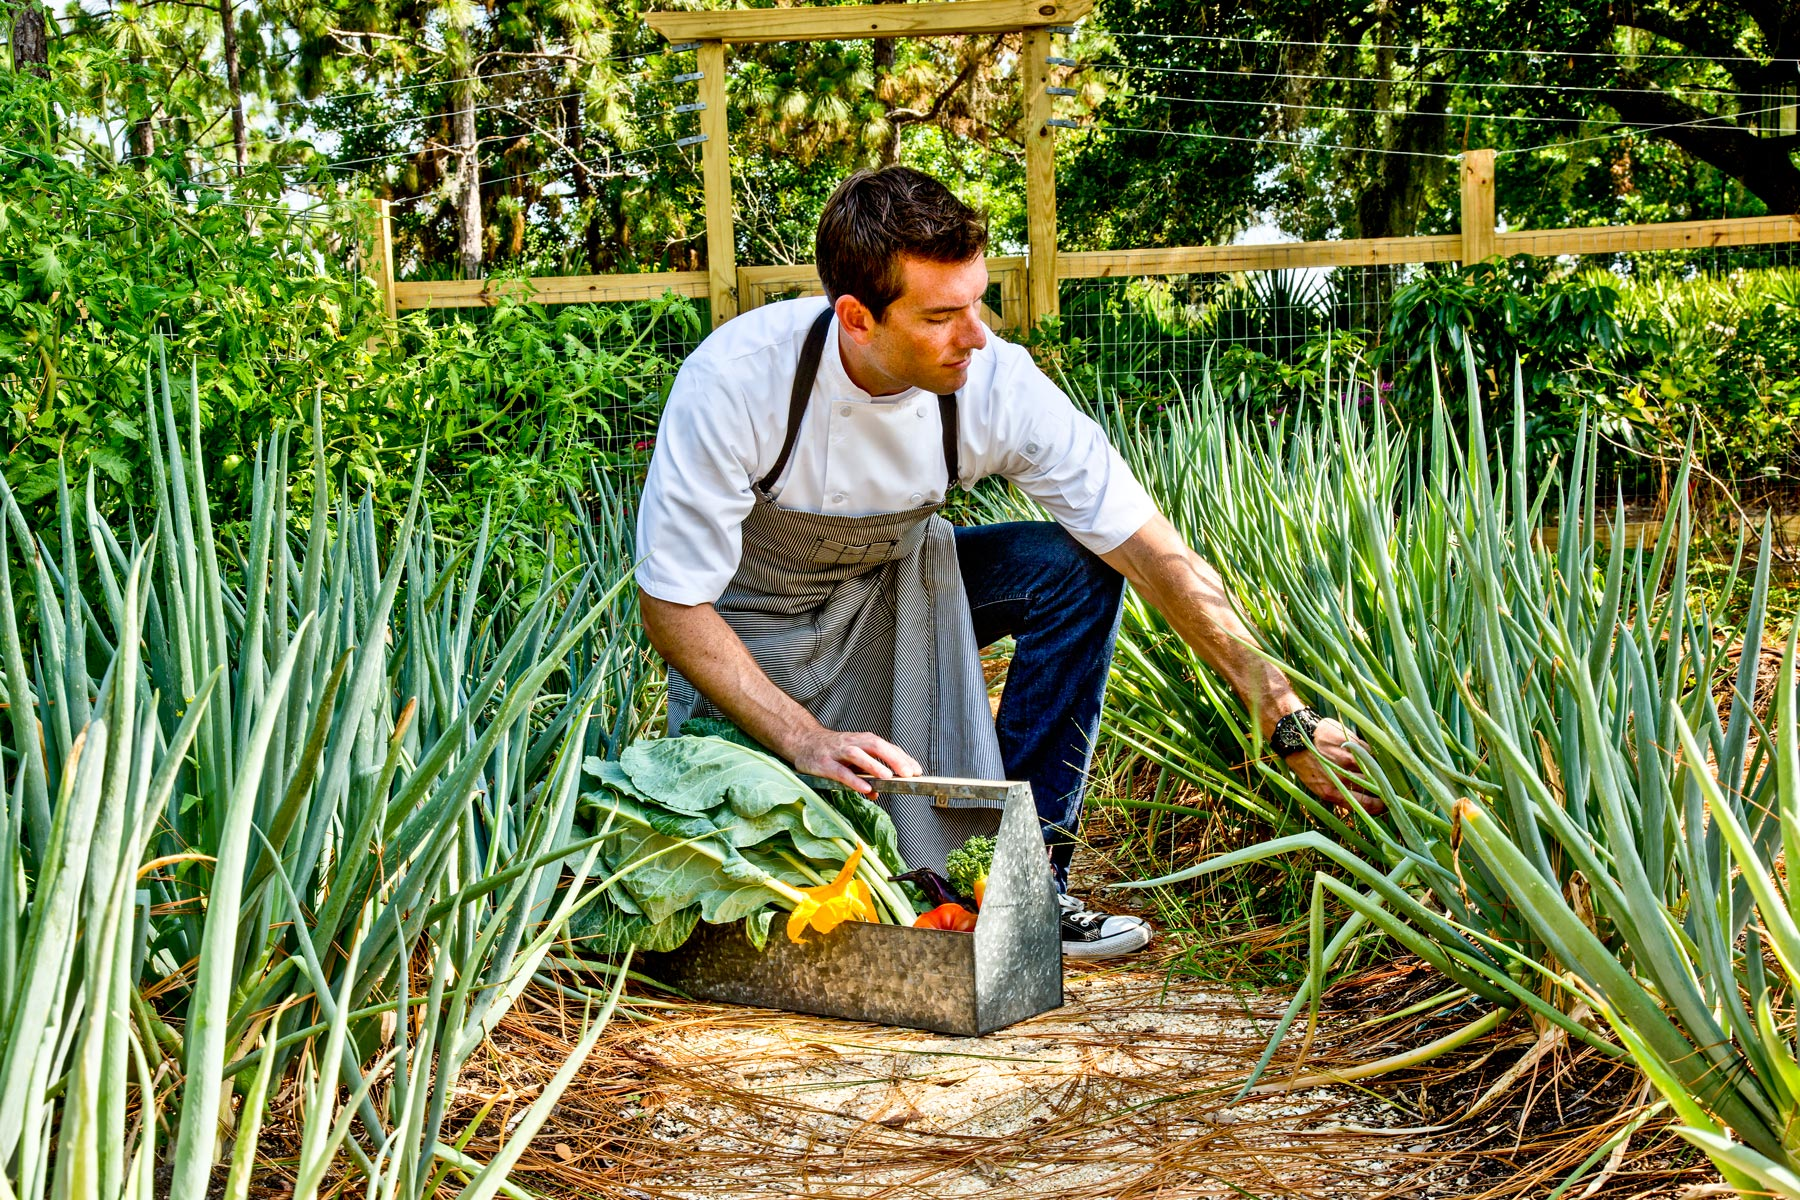 Chef & Restaurant Photography | Chef in Garden